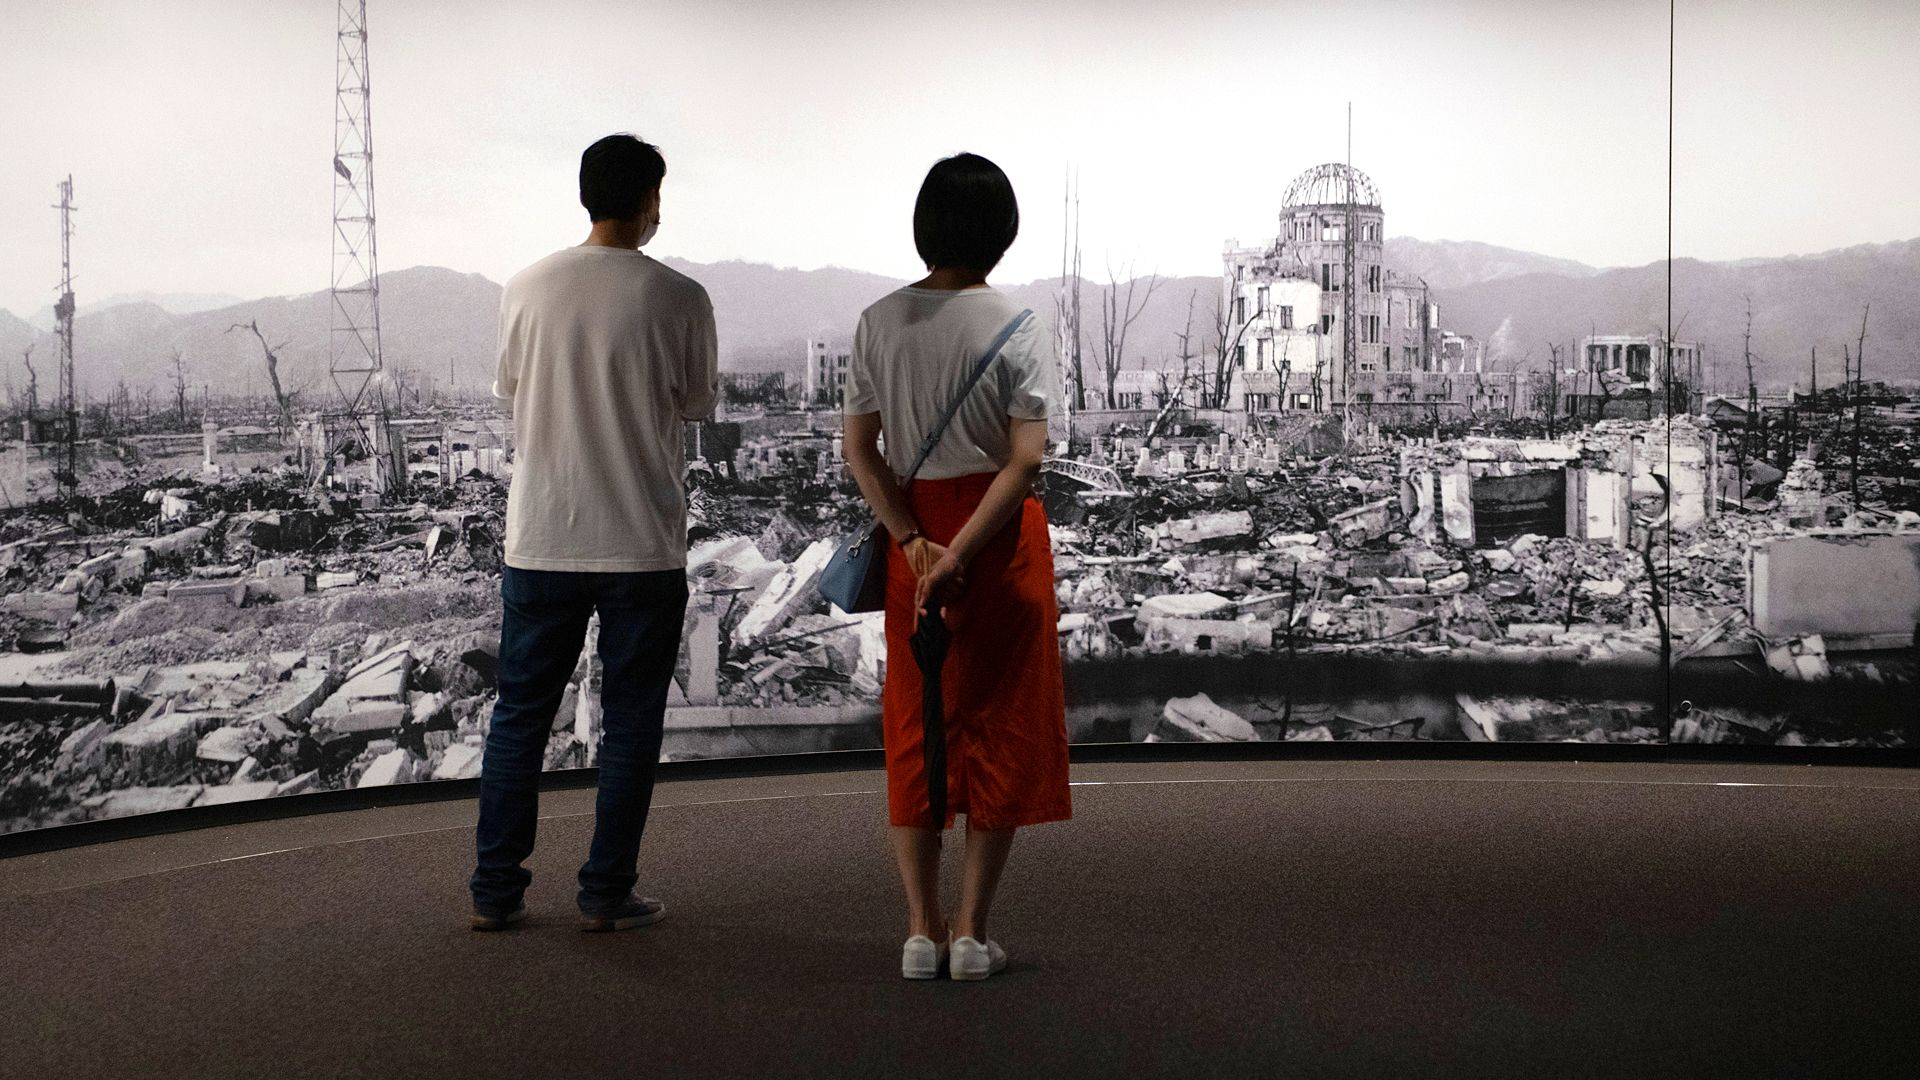 Two museum visitors look at image of destruction, Hiroshima (Credit: Getty Images)